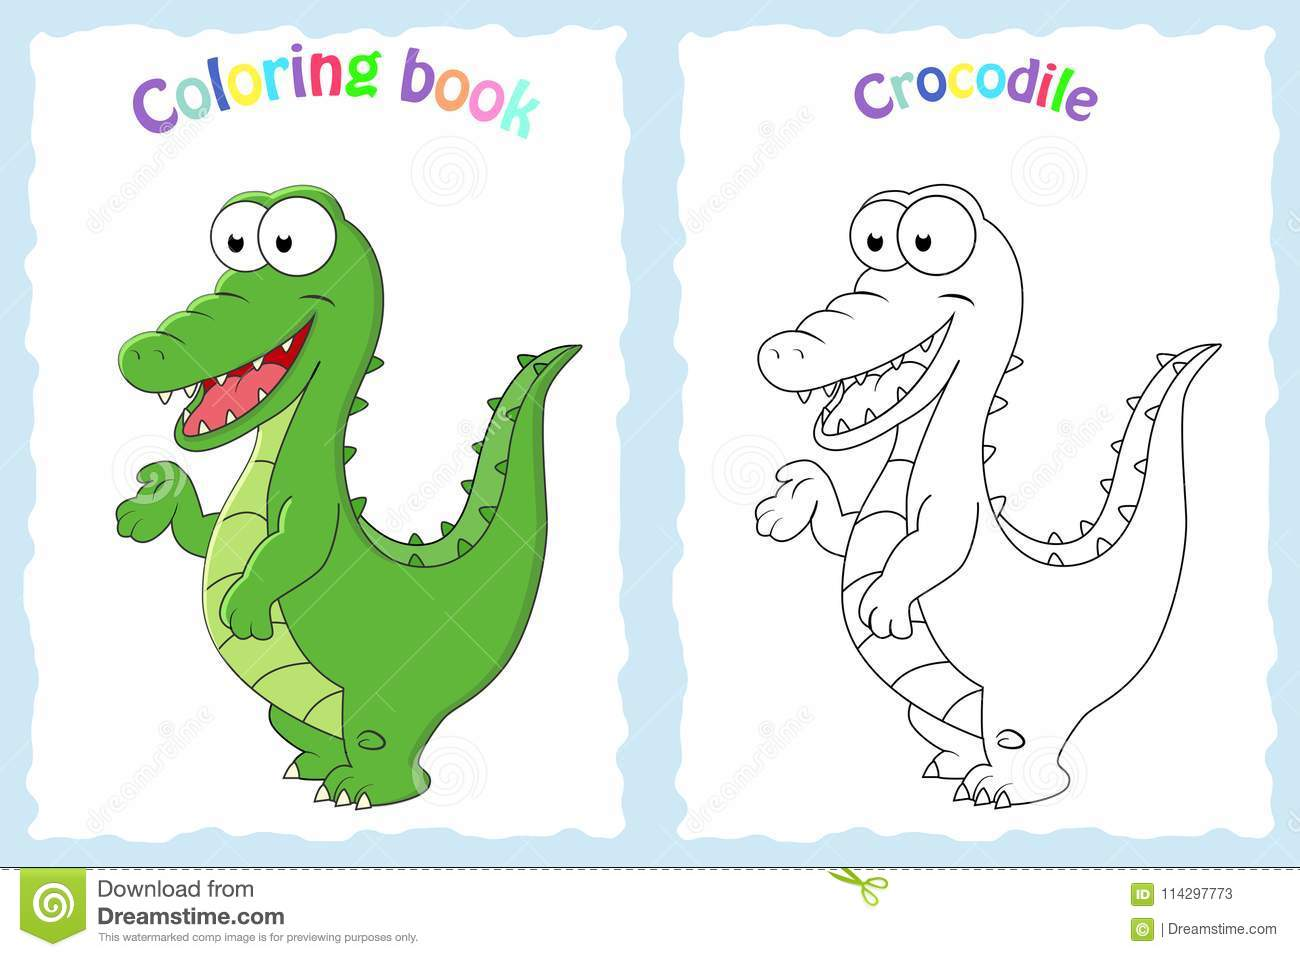 A is for Alligator coloring page   Alphabet printables, Alphabet ...   957x1300